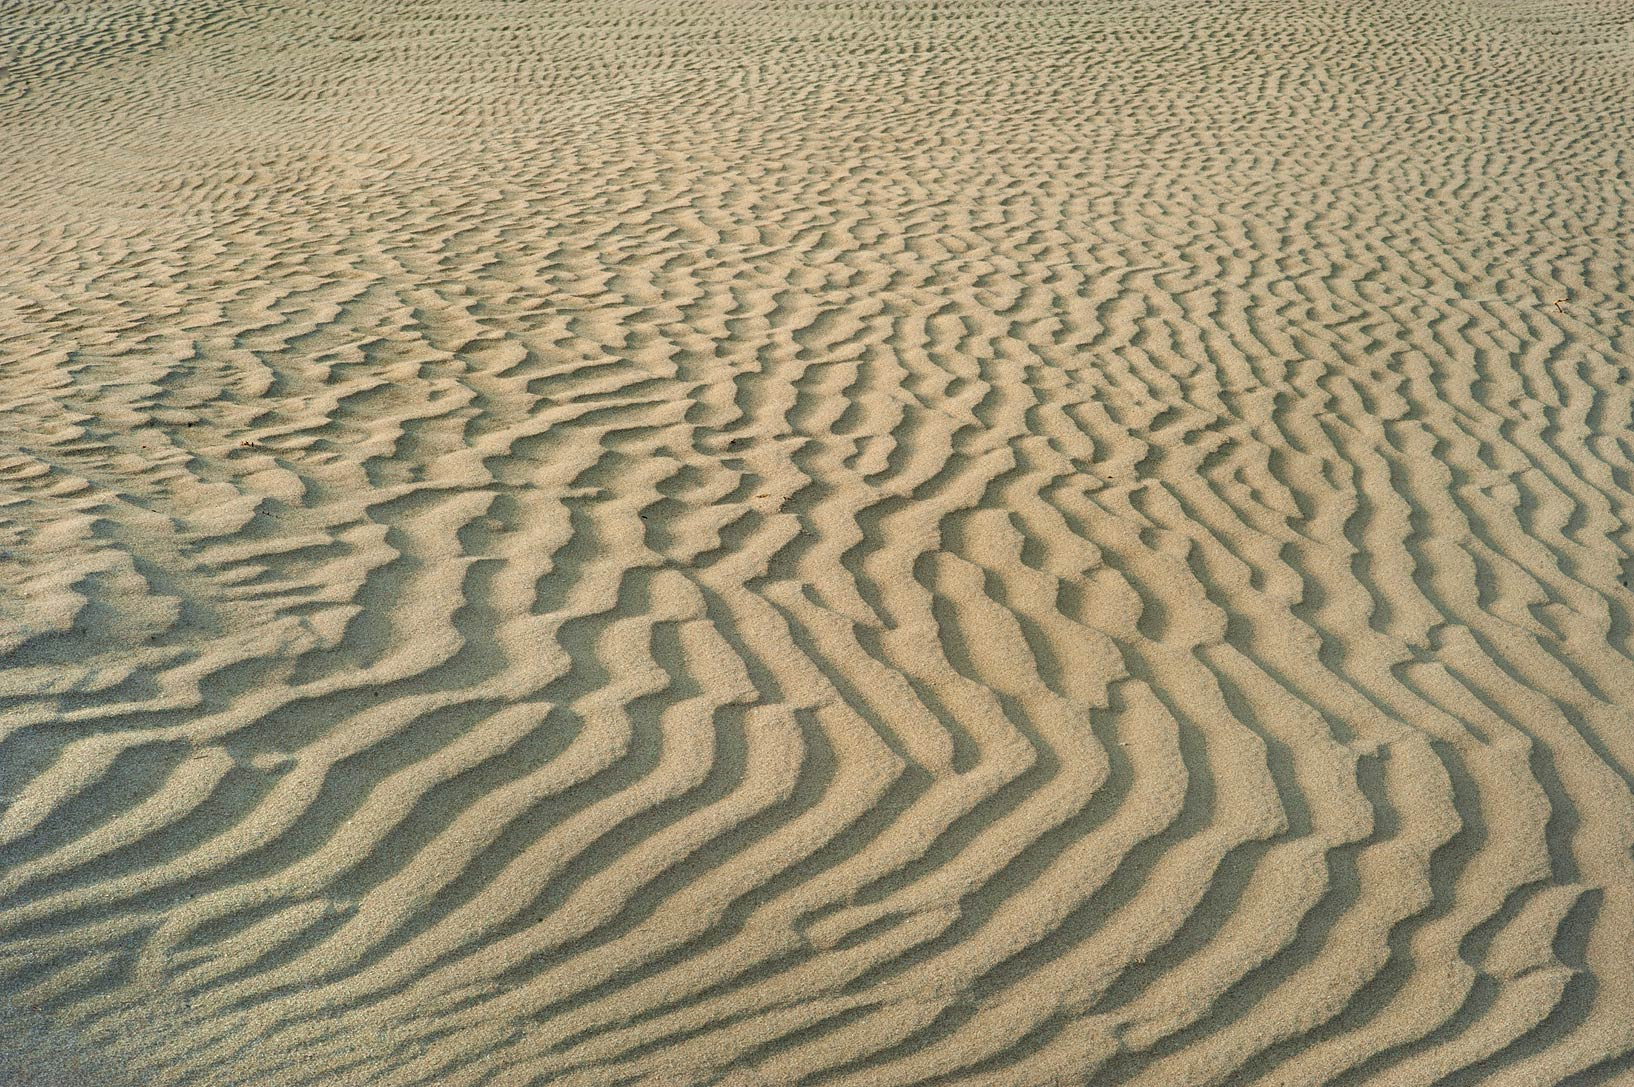 Sand ripples after windy weather near Sealine...view to north-west. Southern Qatar